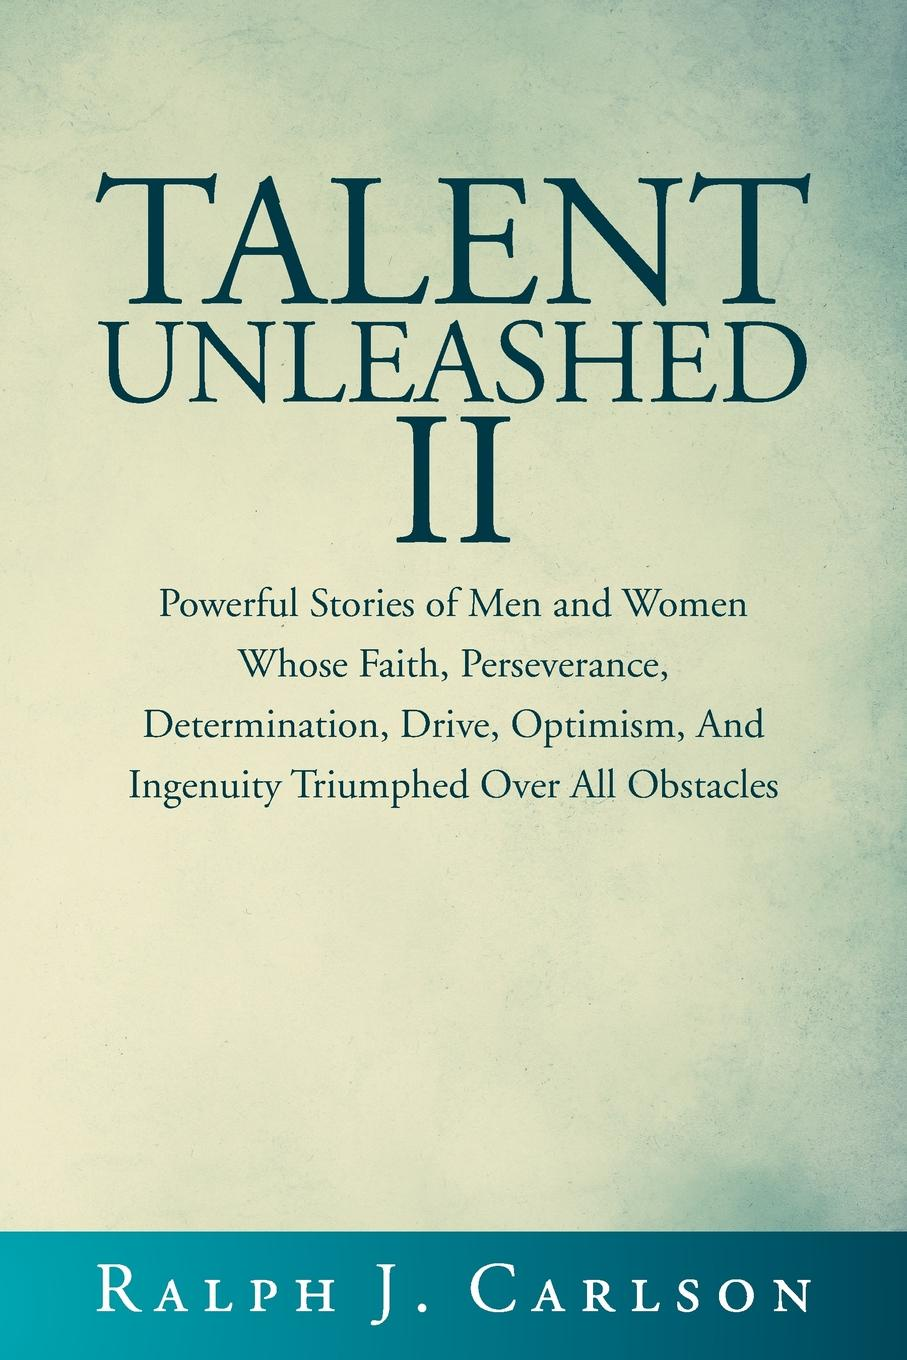 Ralph J. Carlson Talent Unleashed II. Powerful Stories of Men and Women Whose Faith, Perseverance, Determination, Drive, Optimism and Ingenuity Triumphed Over All Obstacles. ralph j carlson talent unleashed ii powerful stories of men and women whose faith perseverance determination drive optimism and ingenuity triumphed over all obstacles